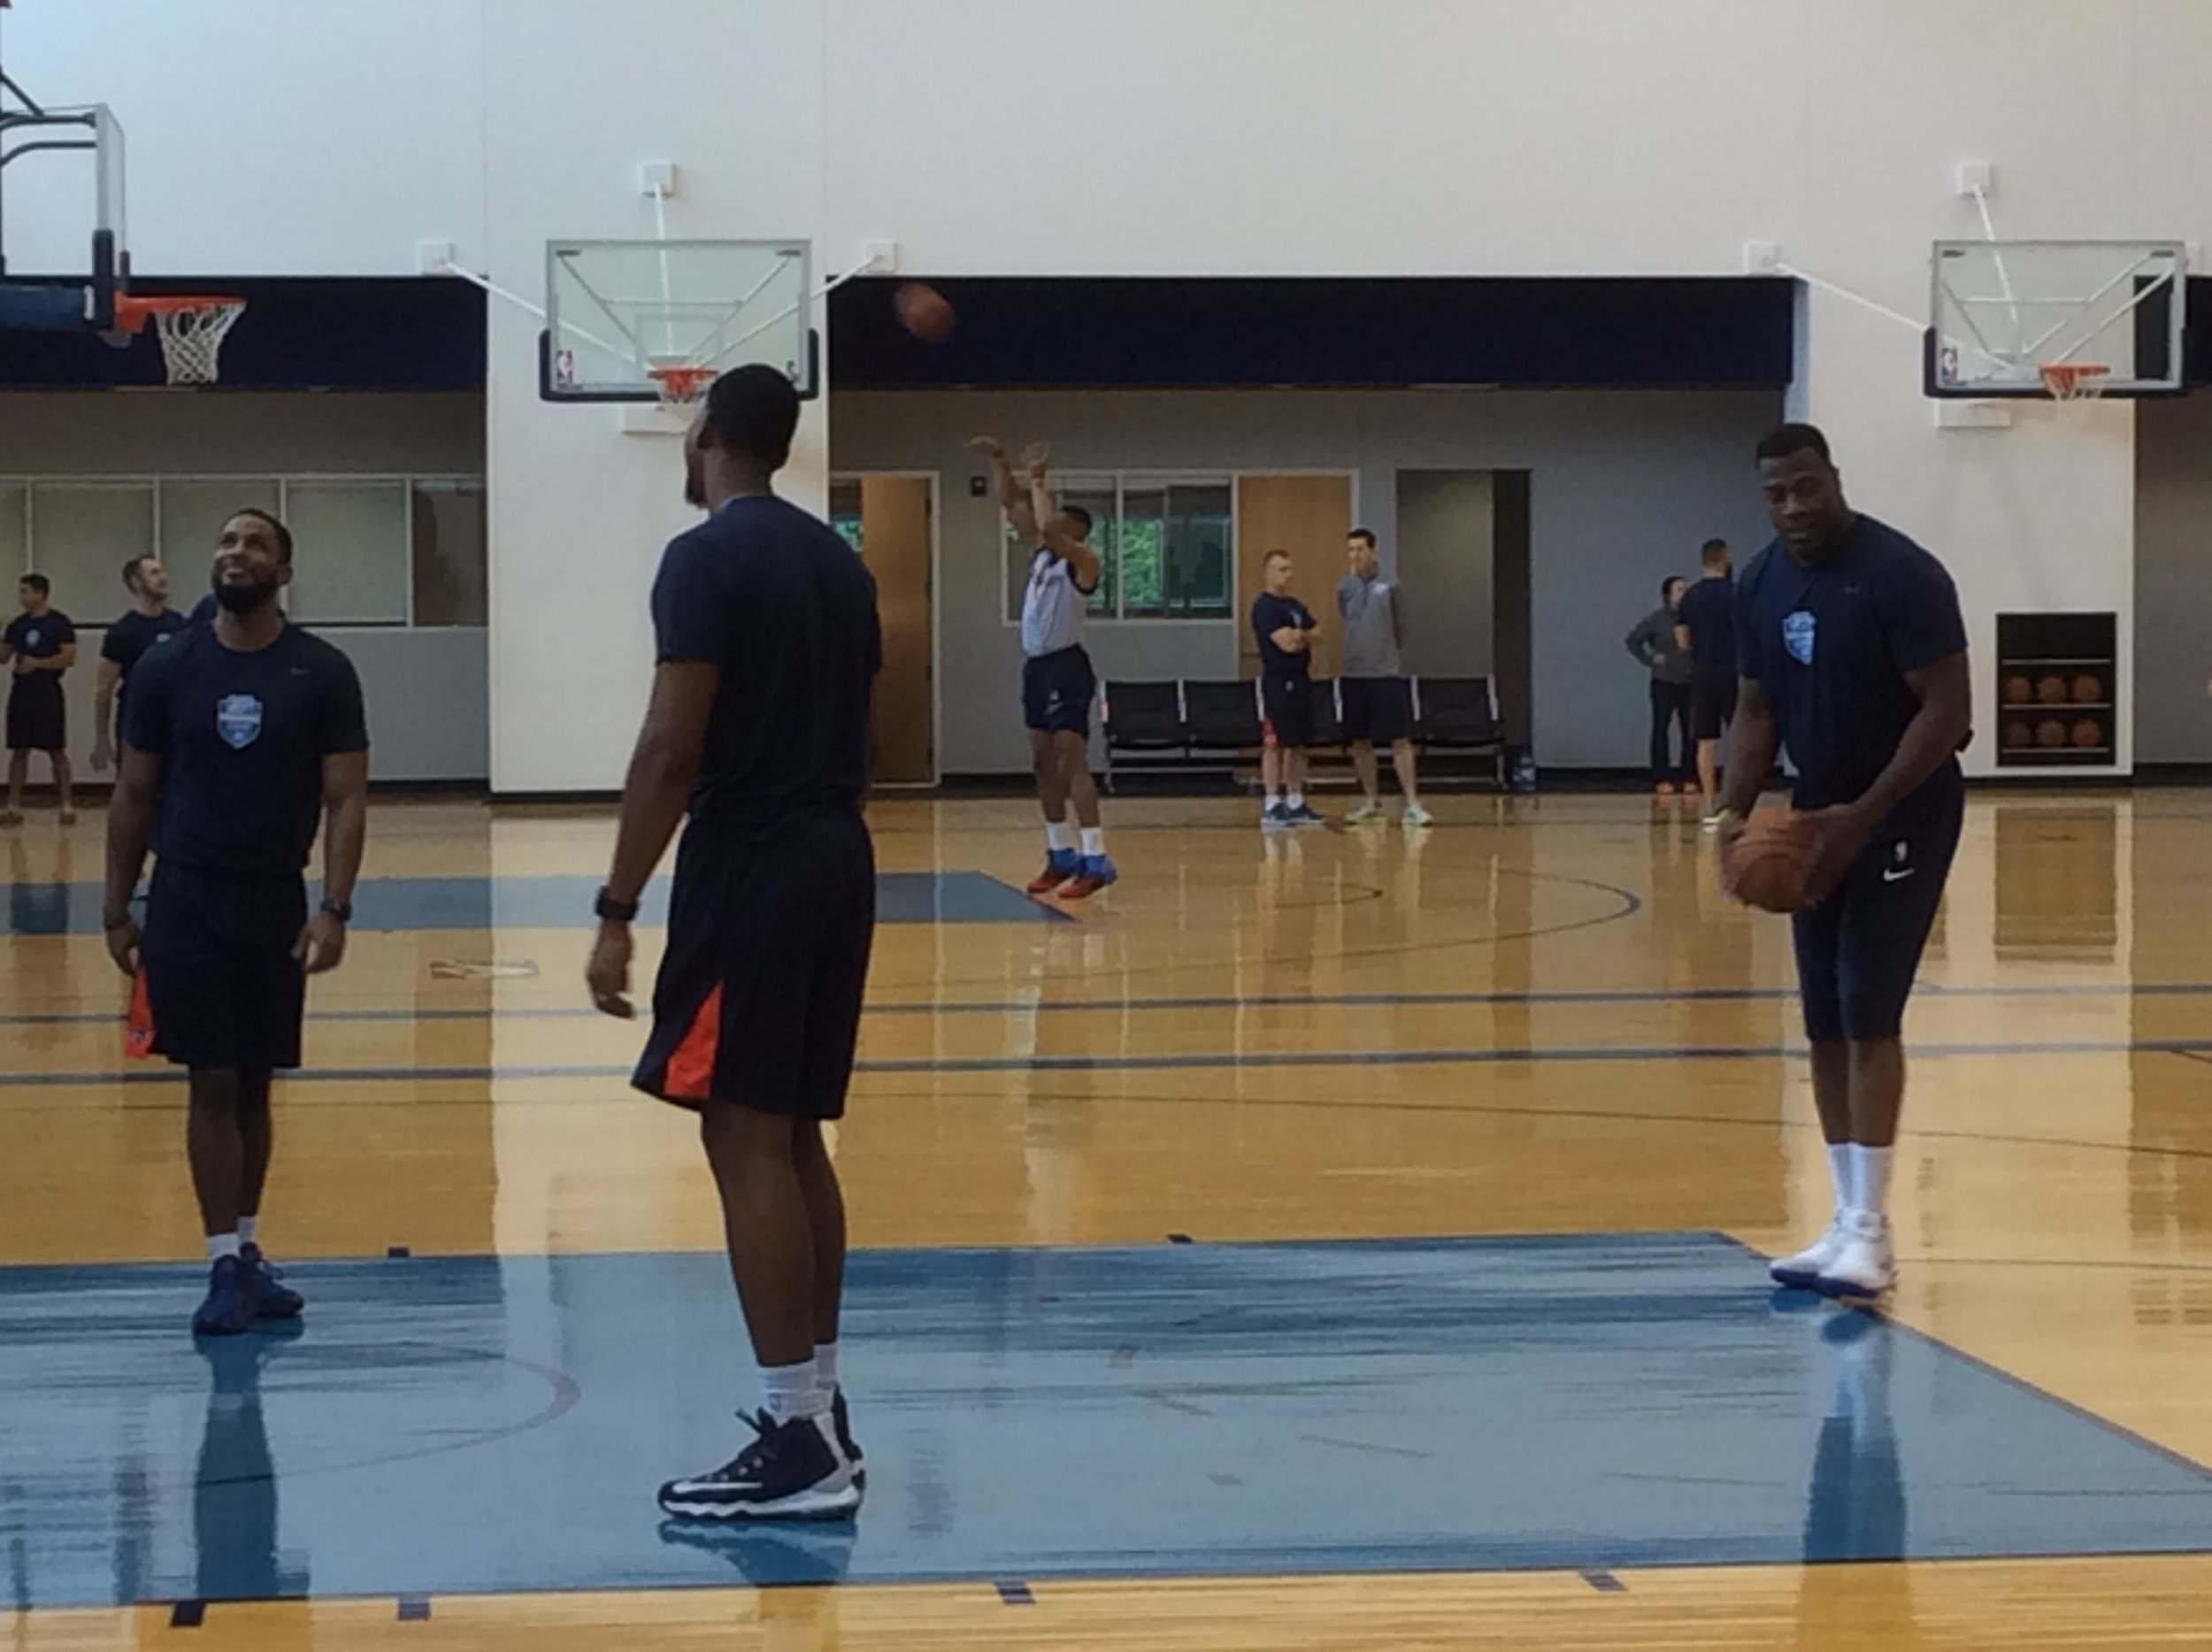 Russell Westbrook (background) shoots free throws at the end of Thunder shootaround this morning while head coach Billy Donovan visits with team physician Dr. Donnie Strack at the INTEGRIS Thunder Development Center.